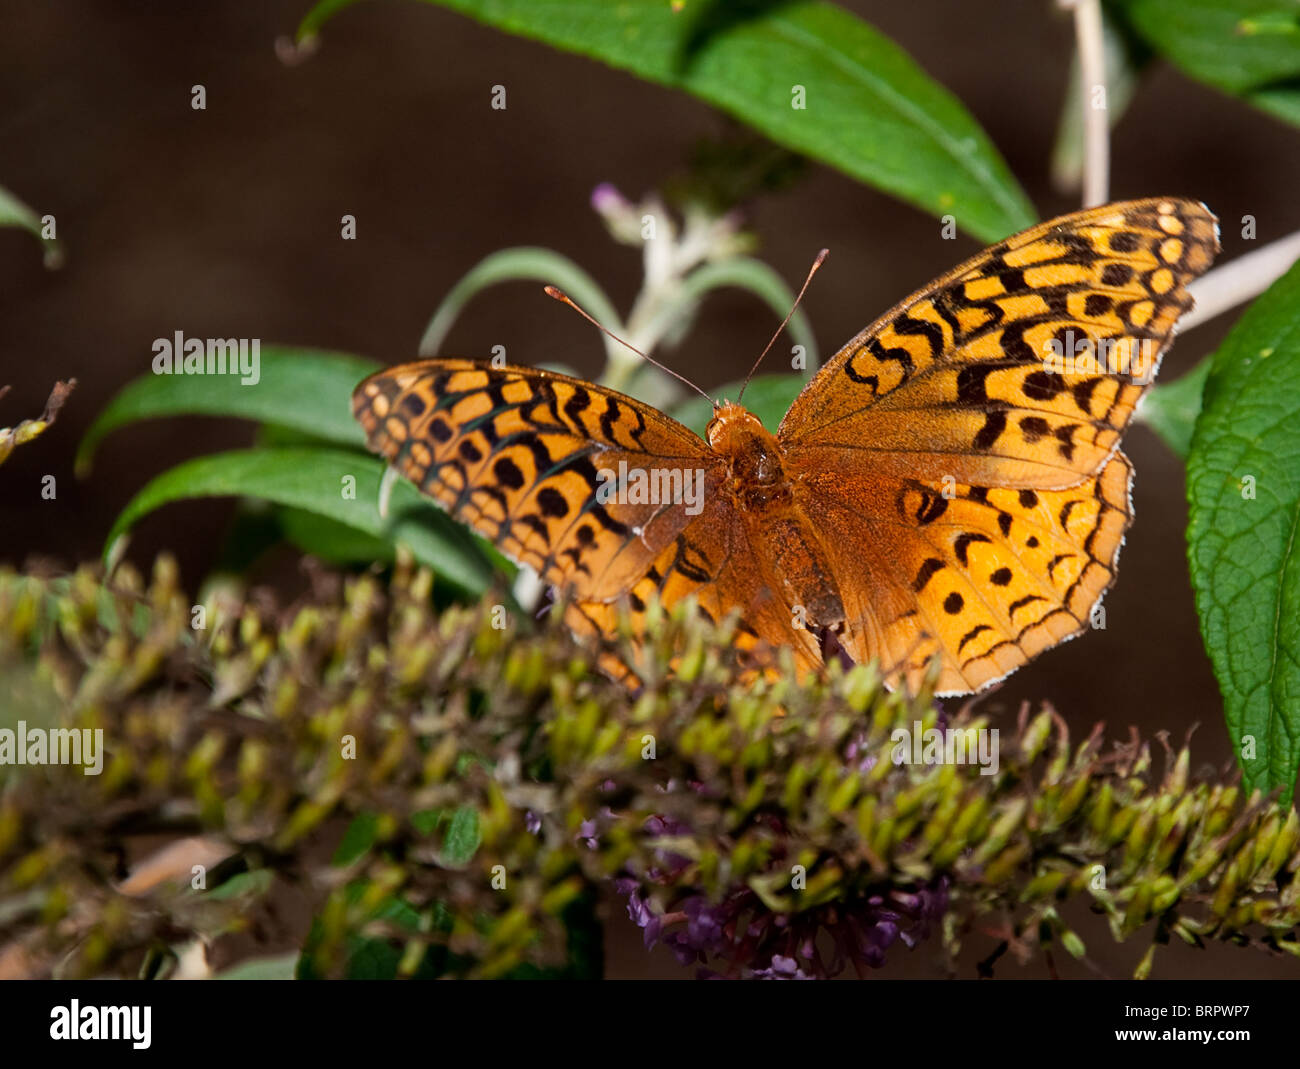 Beautiful Butterfly eating Nectar - Stock Image